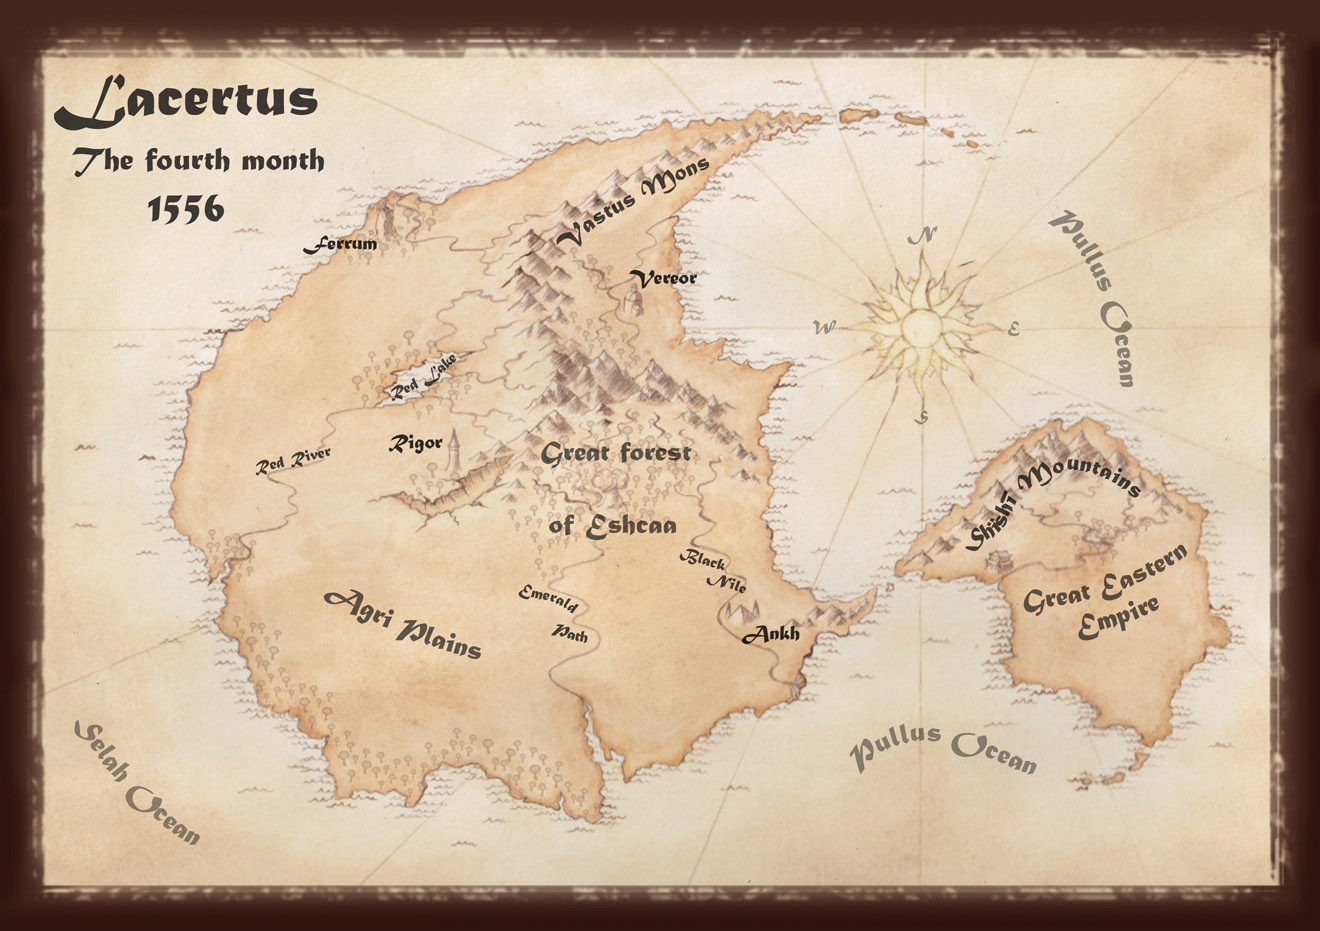 Lacertus